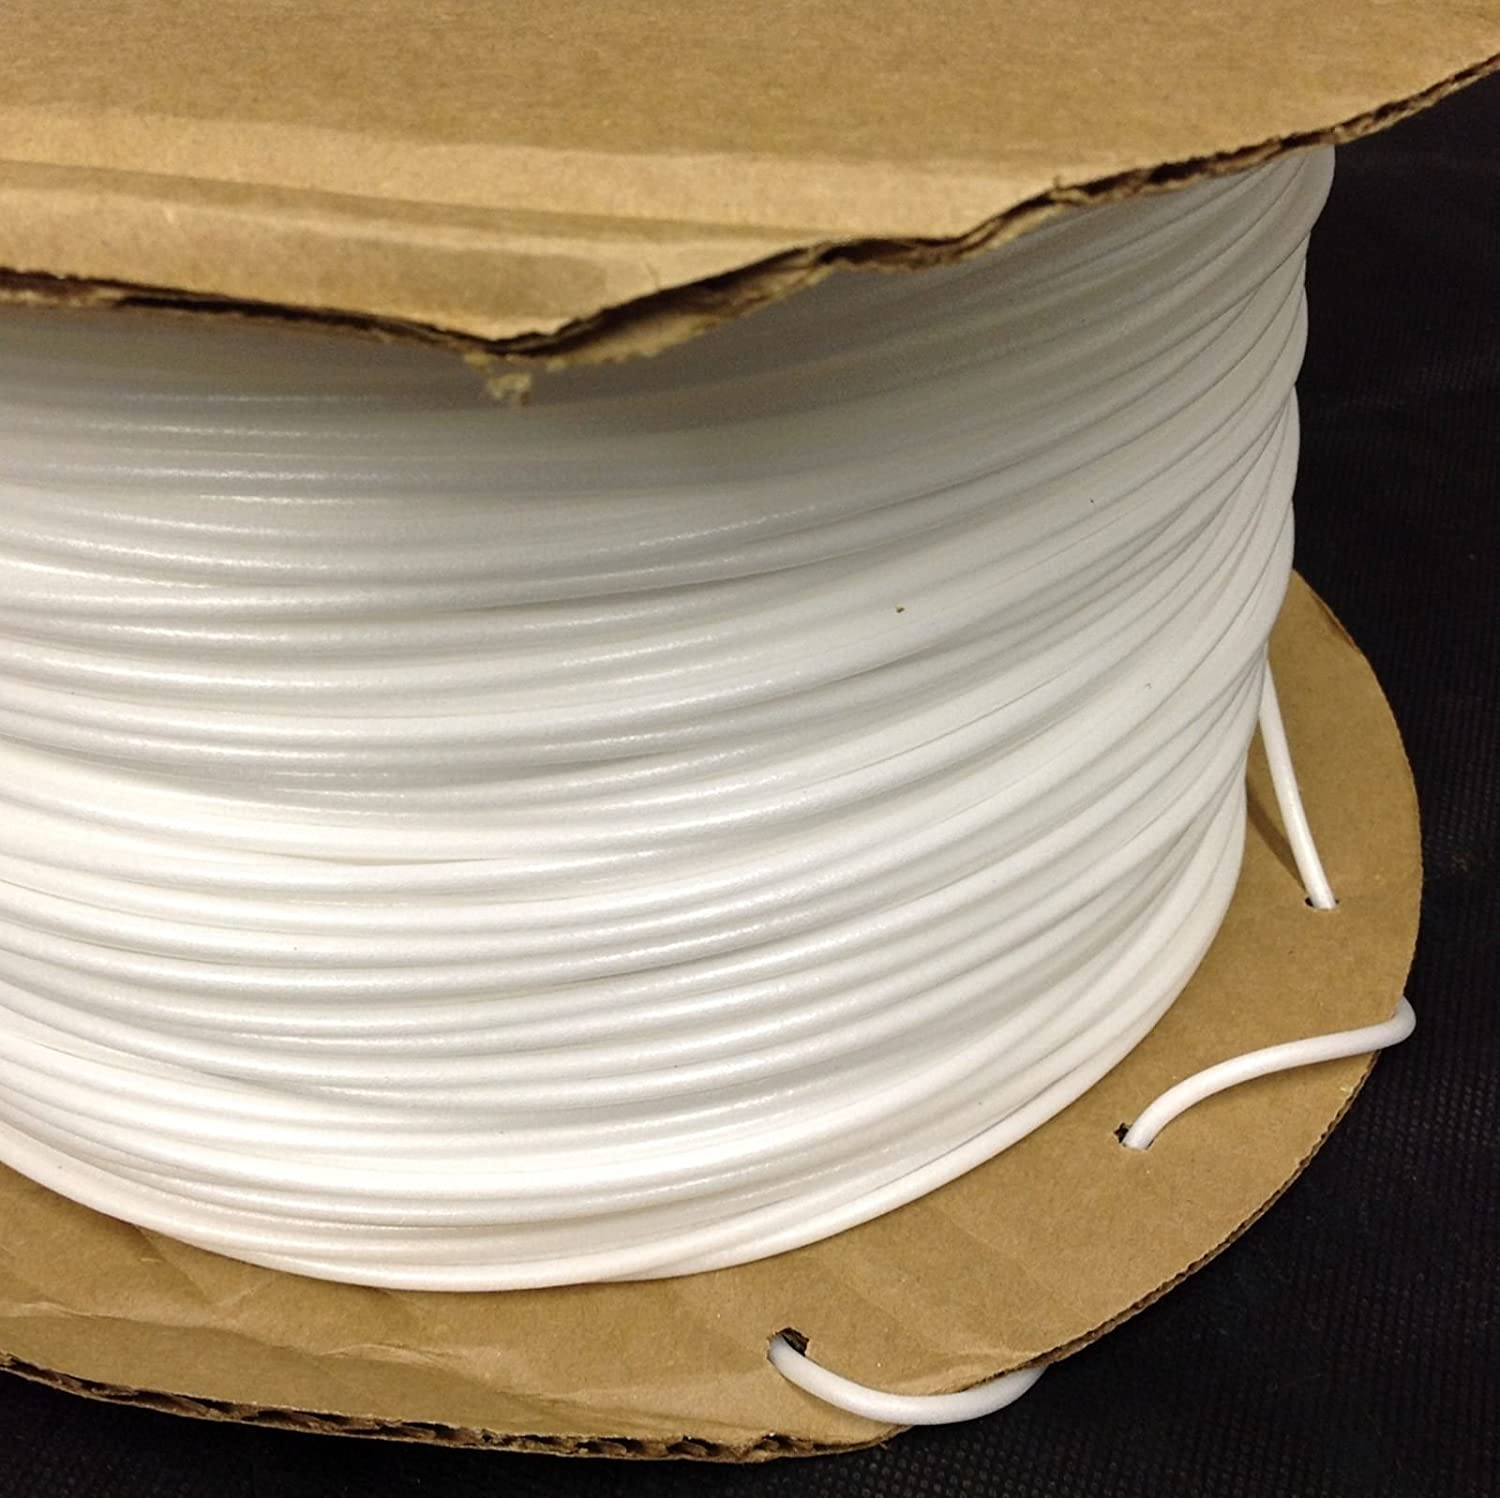 COLIBROX White Poly Foam Welt Genuine Free Shipping Piping Outdoor Online limited product Upholstery Sew Cord